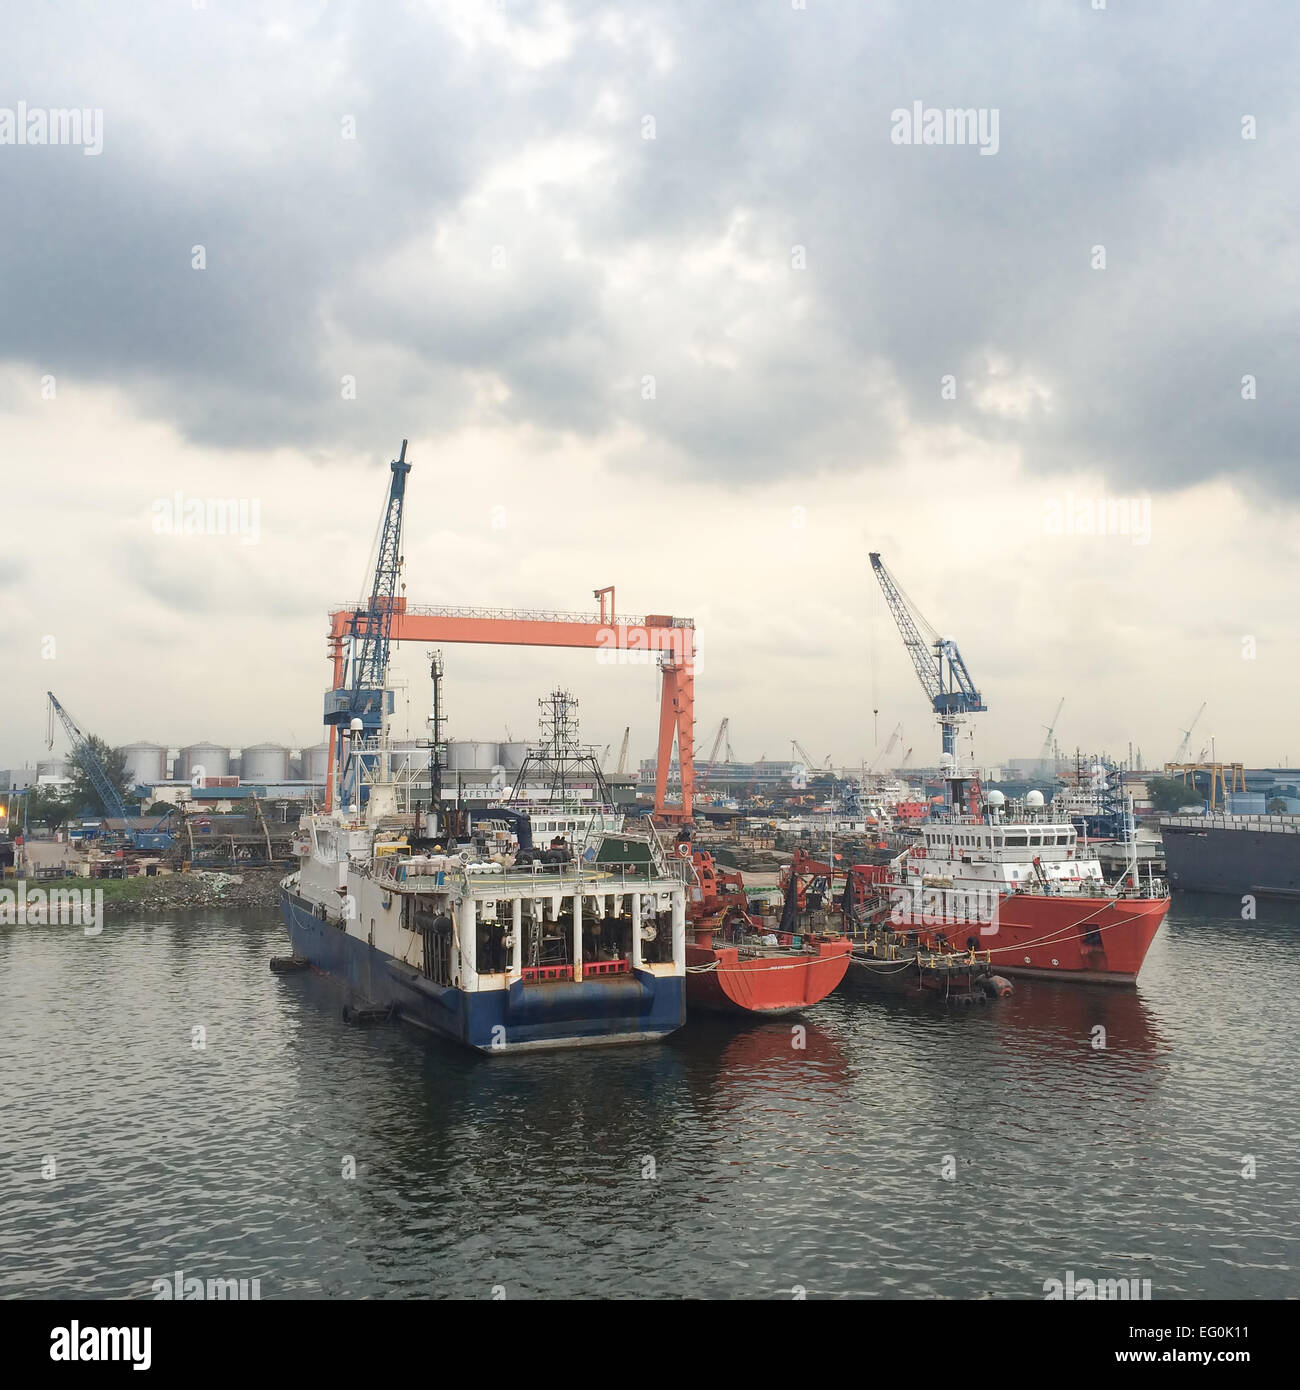 Industrial ships moored at pier of commercial dock - Stock Image